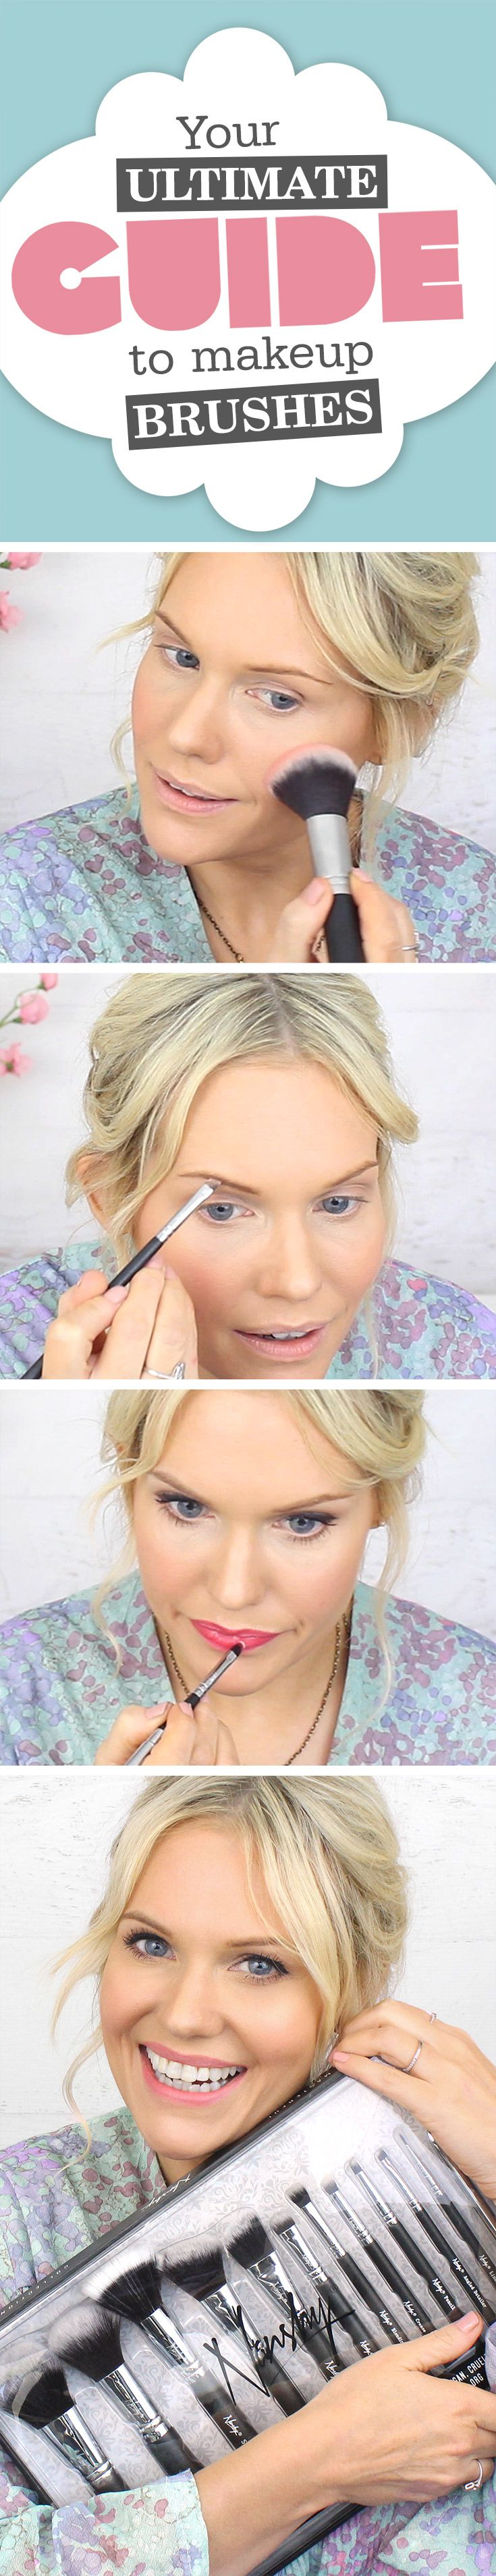 Possibly my BEST tutorial yet!! If you've EVER used a makeup brush you NEED to watch my NEW video! Click this image to learn EXACTLY how to use makeup brushes just like a Makeup Artist so you can achieve professional looking makeup!! ✨✨